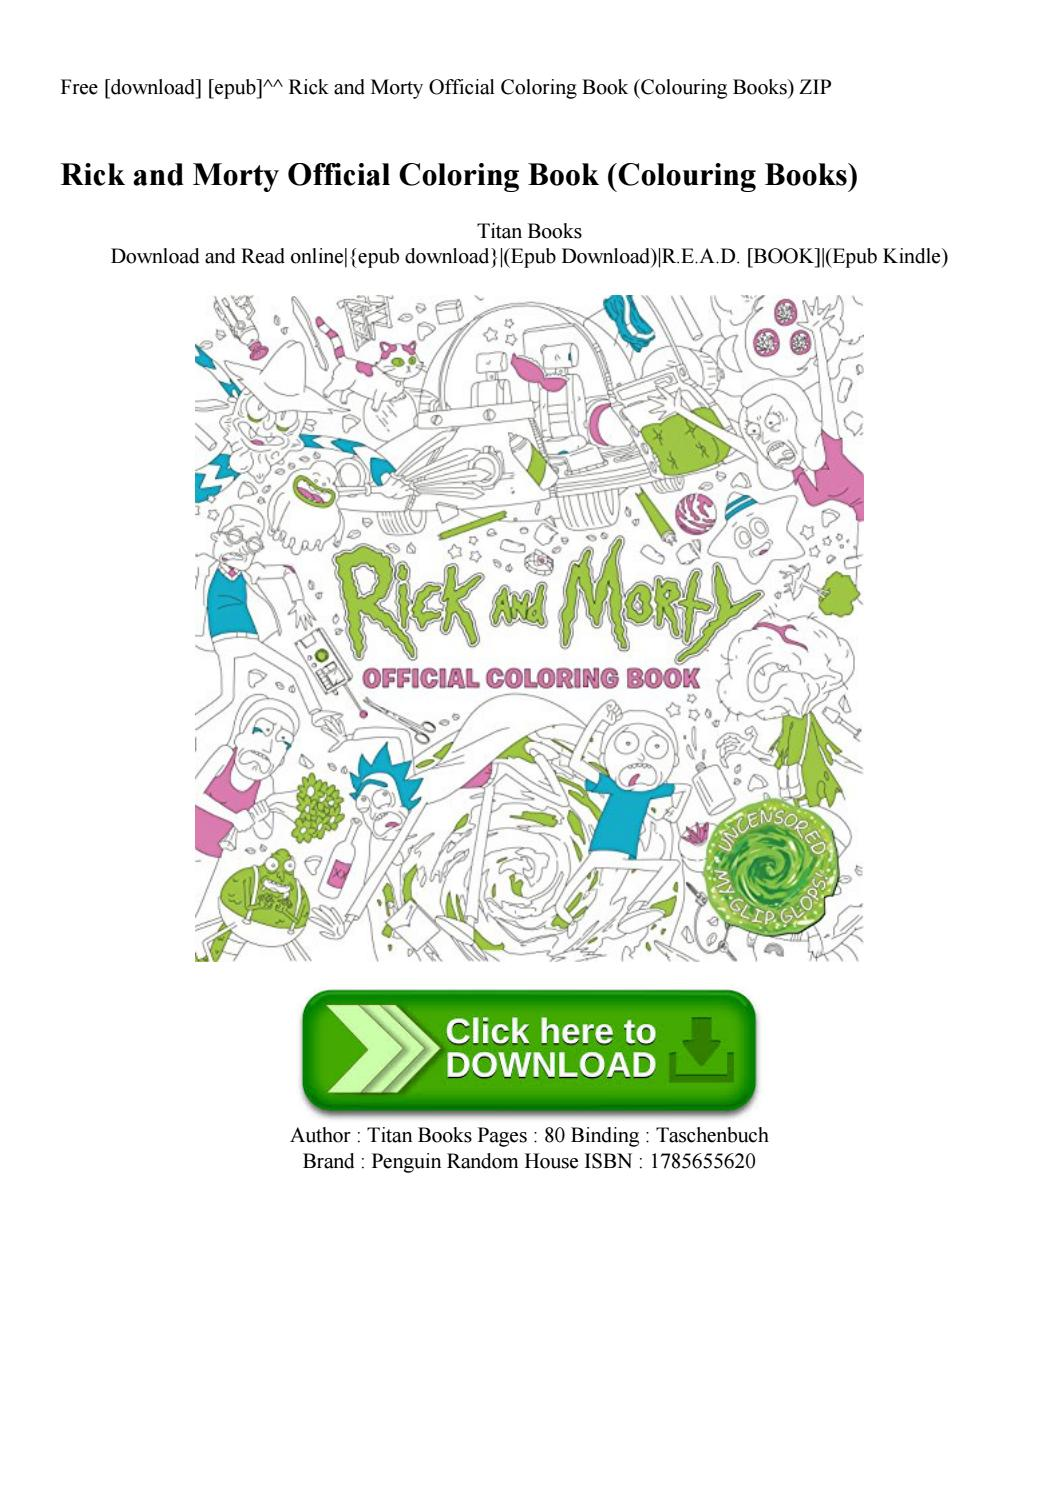 Free [download] [epub]^^ Rick And Morty Official Coloring Book